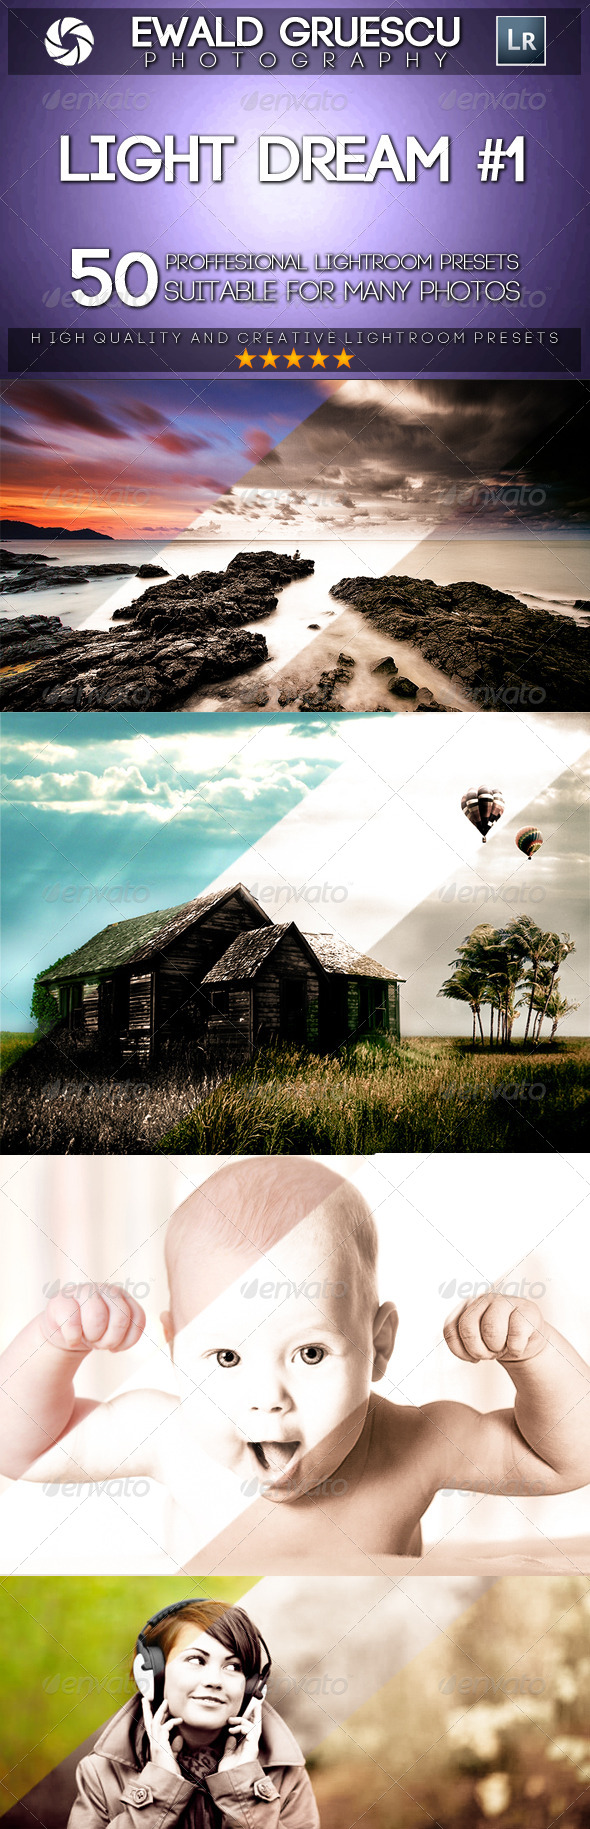 GraphicRiver Light Dream Part I Lightroom Presets 8375145